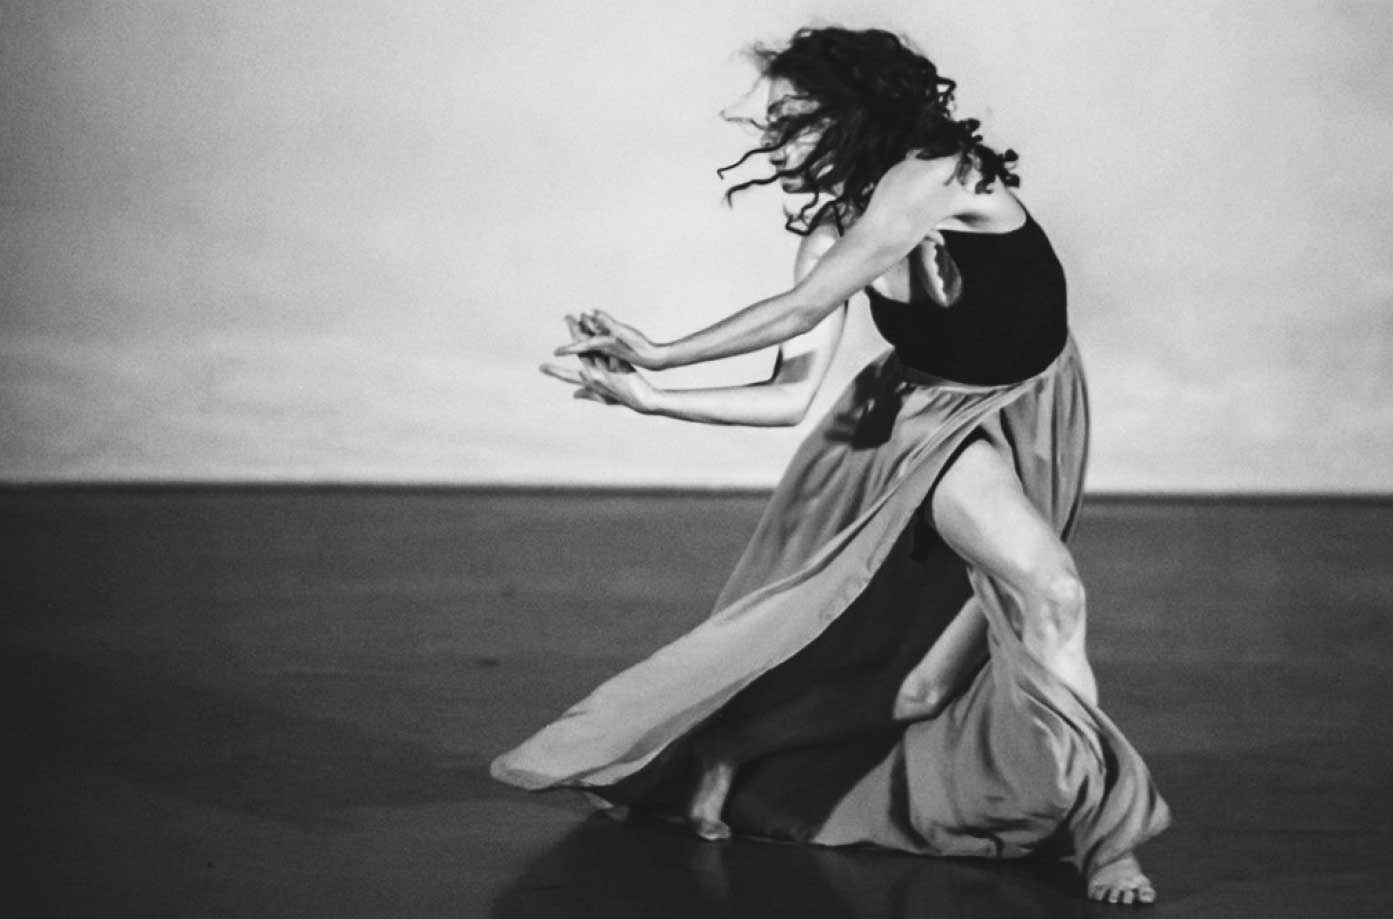 Laura Careless, Neruda Songs dance performance – Photo by Amanda Tipton